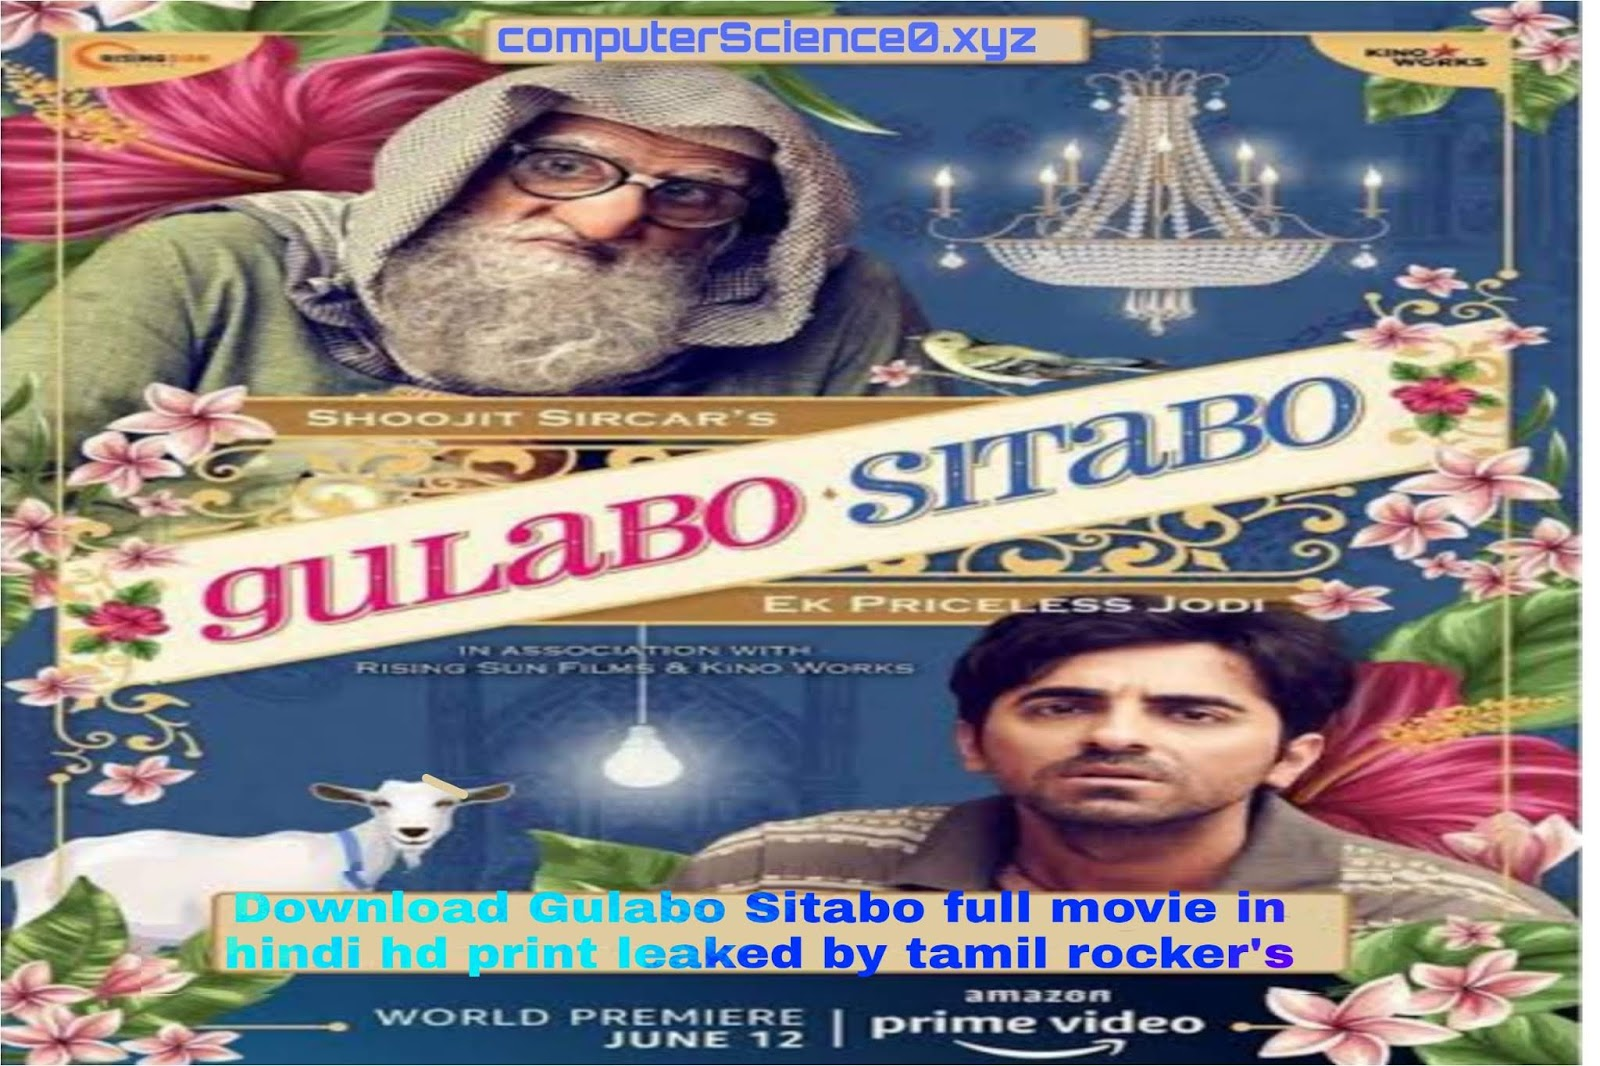 Download Gulabo Sitabo full movie in hindi hd print leaked by tamil rocker's before release date